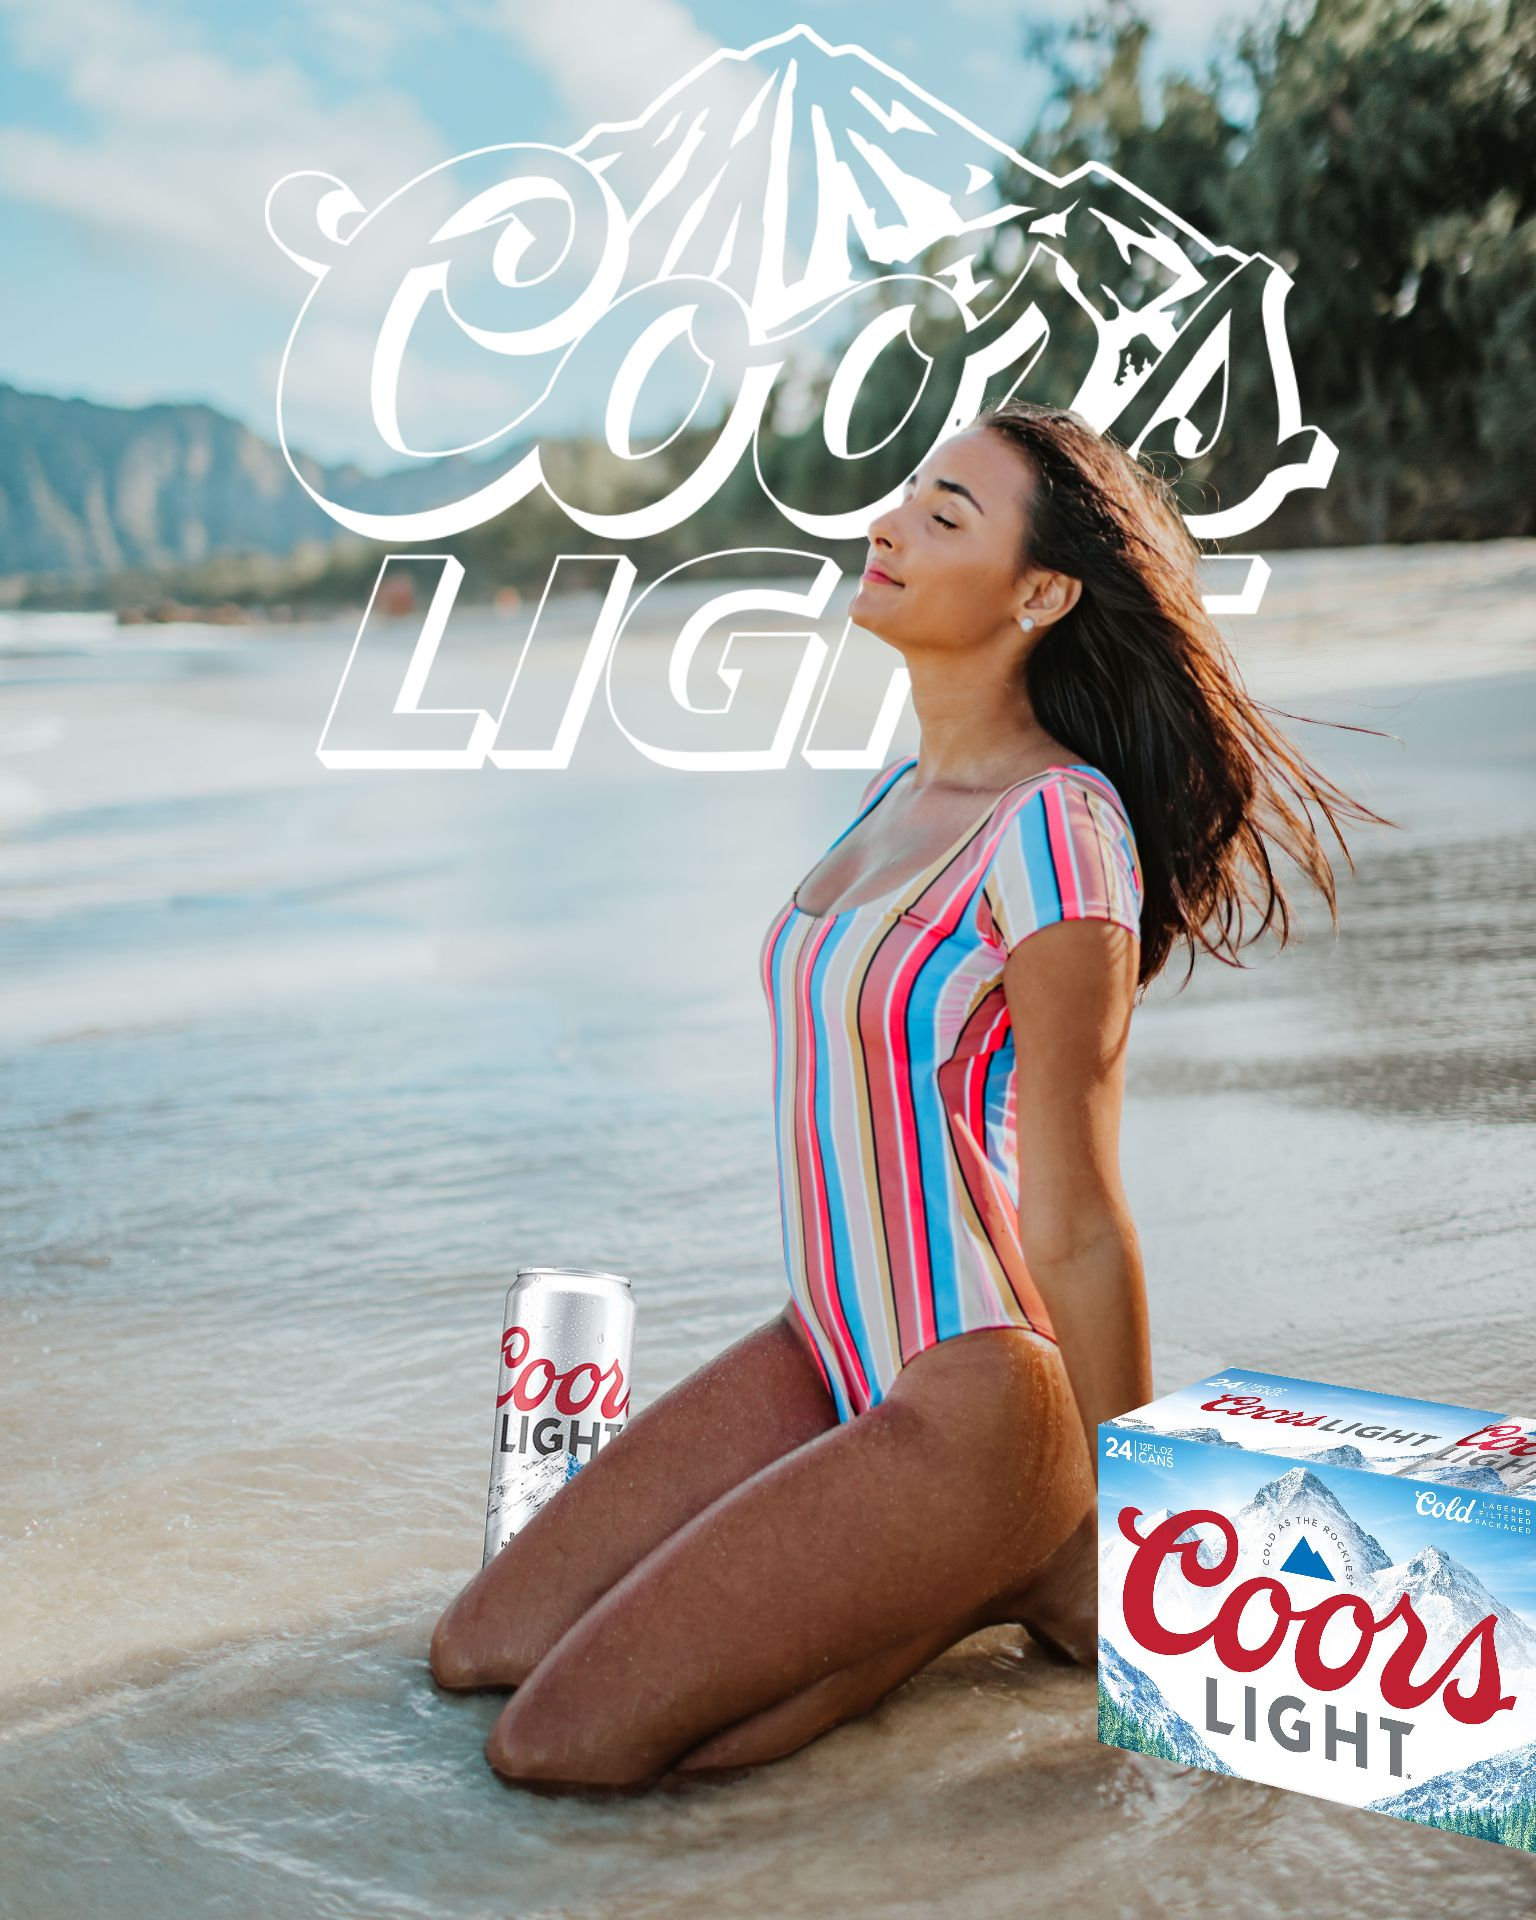 An example of the TikTok Beer Poster trend using the Coors Lite brand.